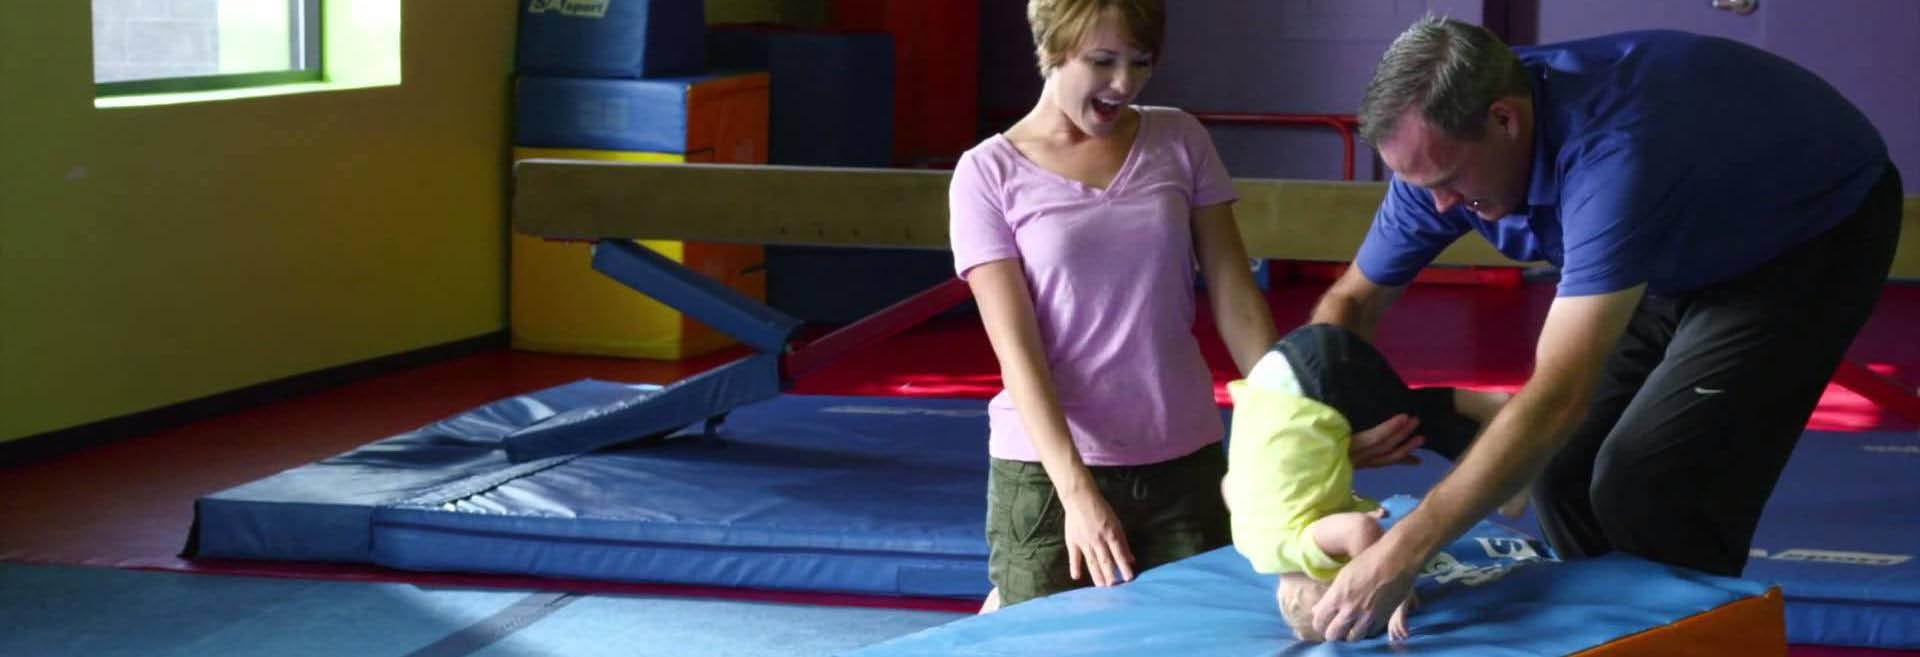 Coupons & Deals 58% Off Children's Classes at The Little Gym Of Evergreen From Business: The Little Gym of Evergreen is San Jose's premiere enrichment and physical development center for kids 4 months through 12 years.